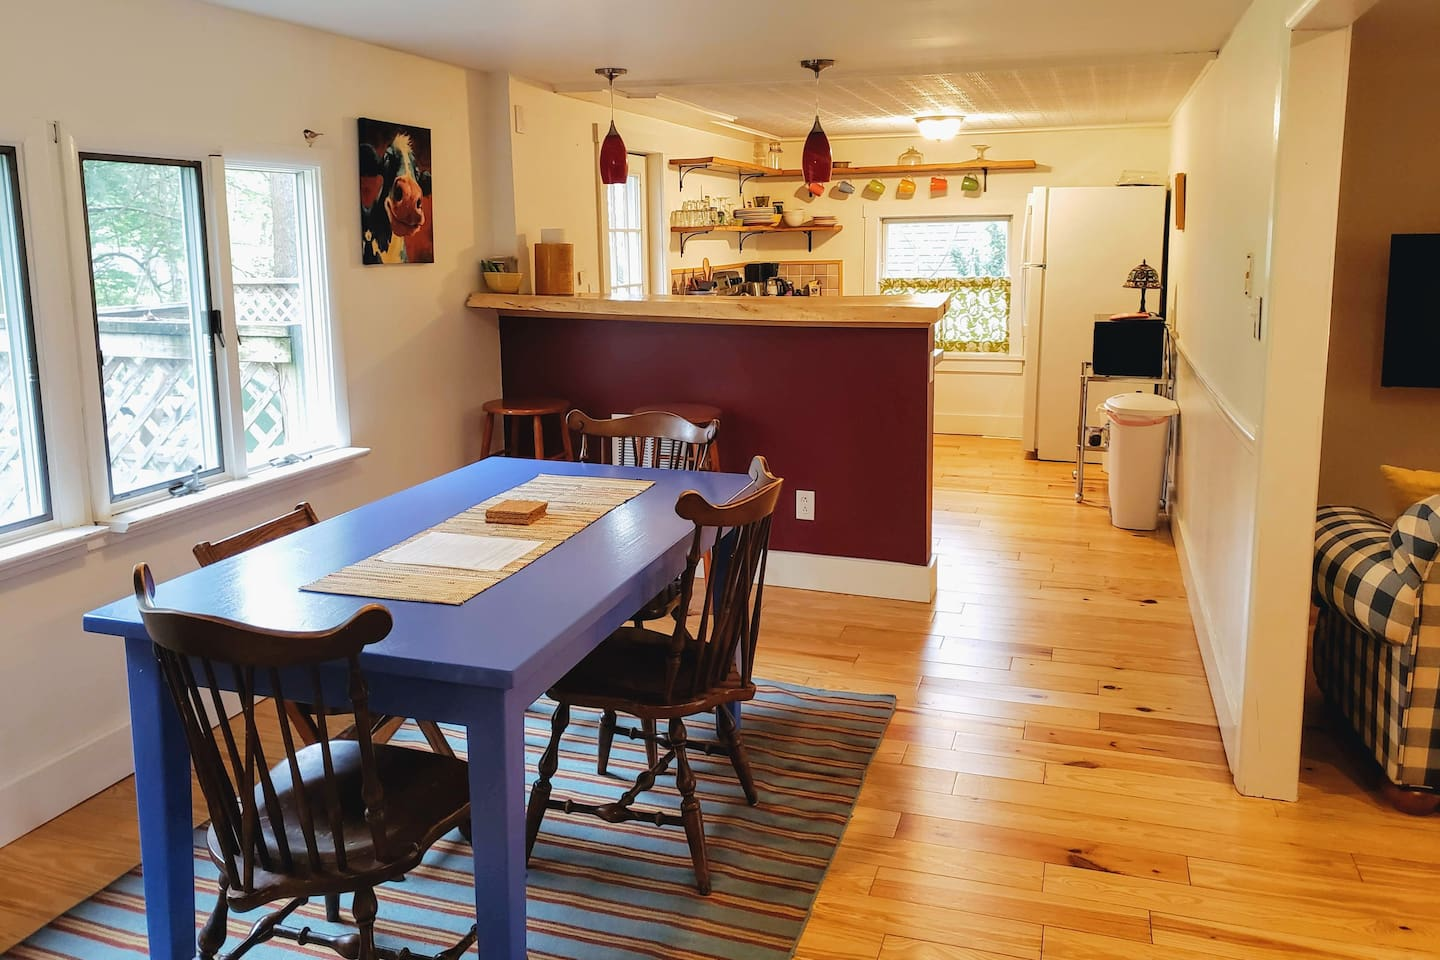 The open floor plan kitchen, dining, and living room is great for families.